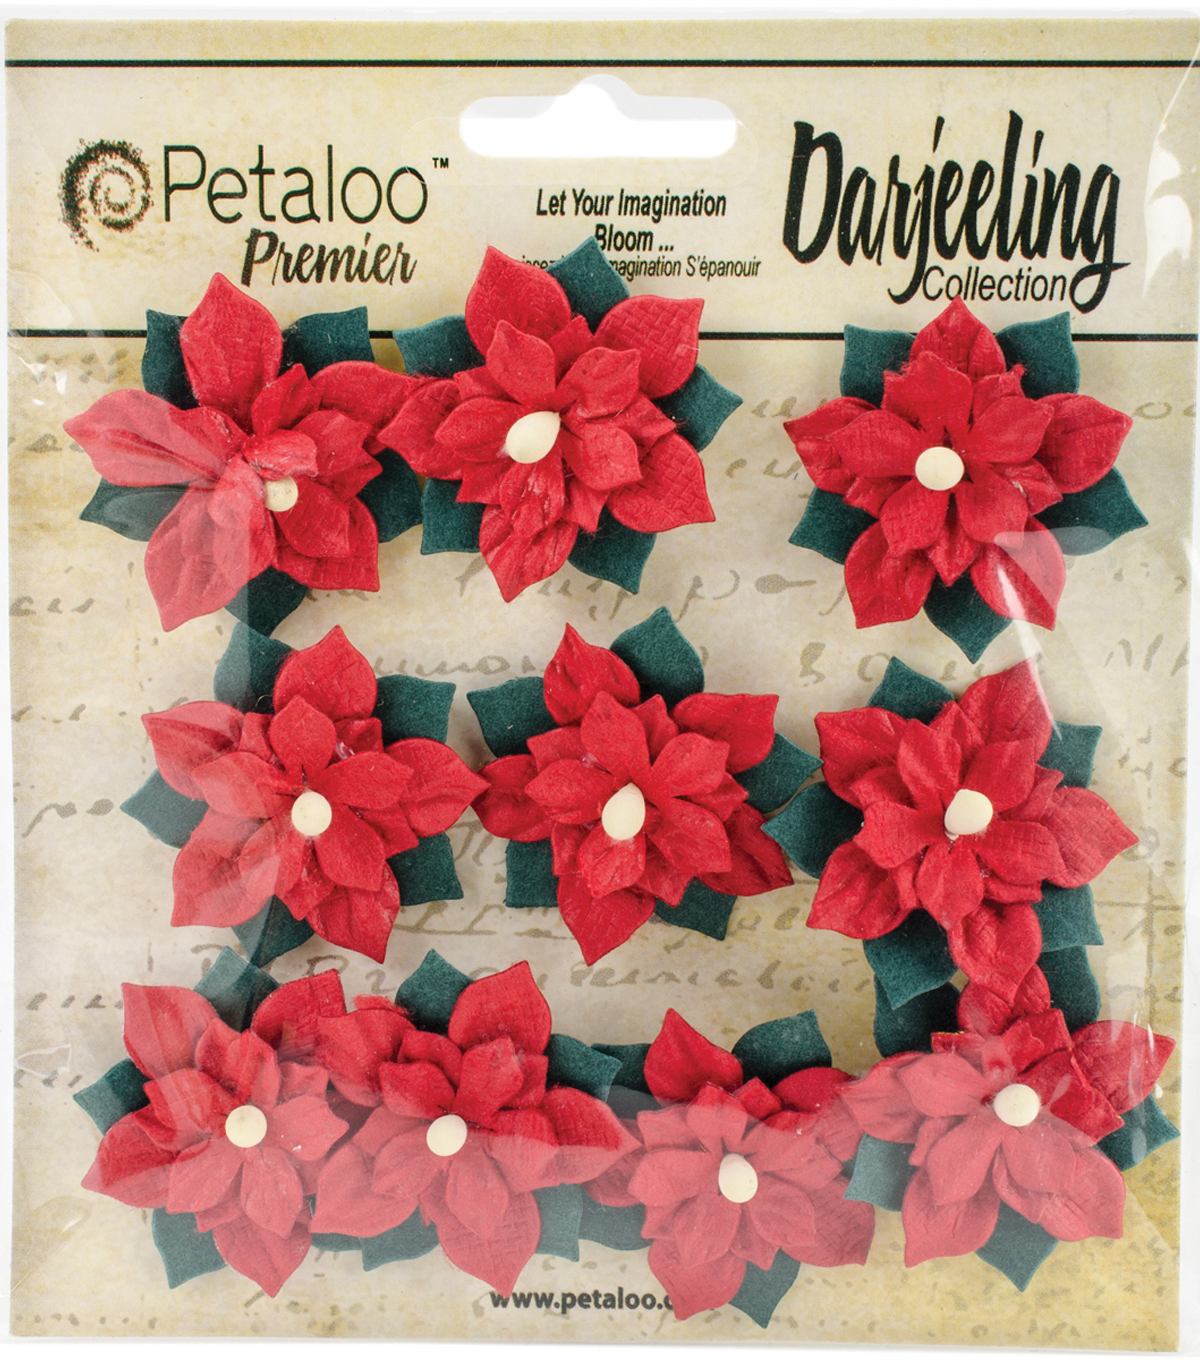 Petaloo Botanica Vintage 9ct Velvet Mini Flowers